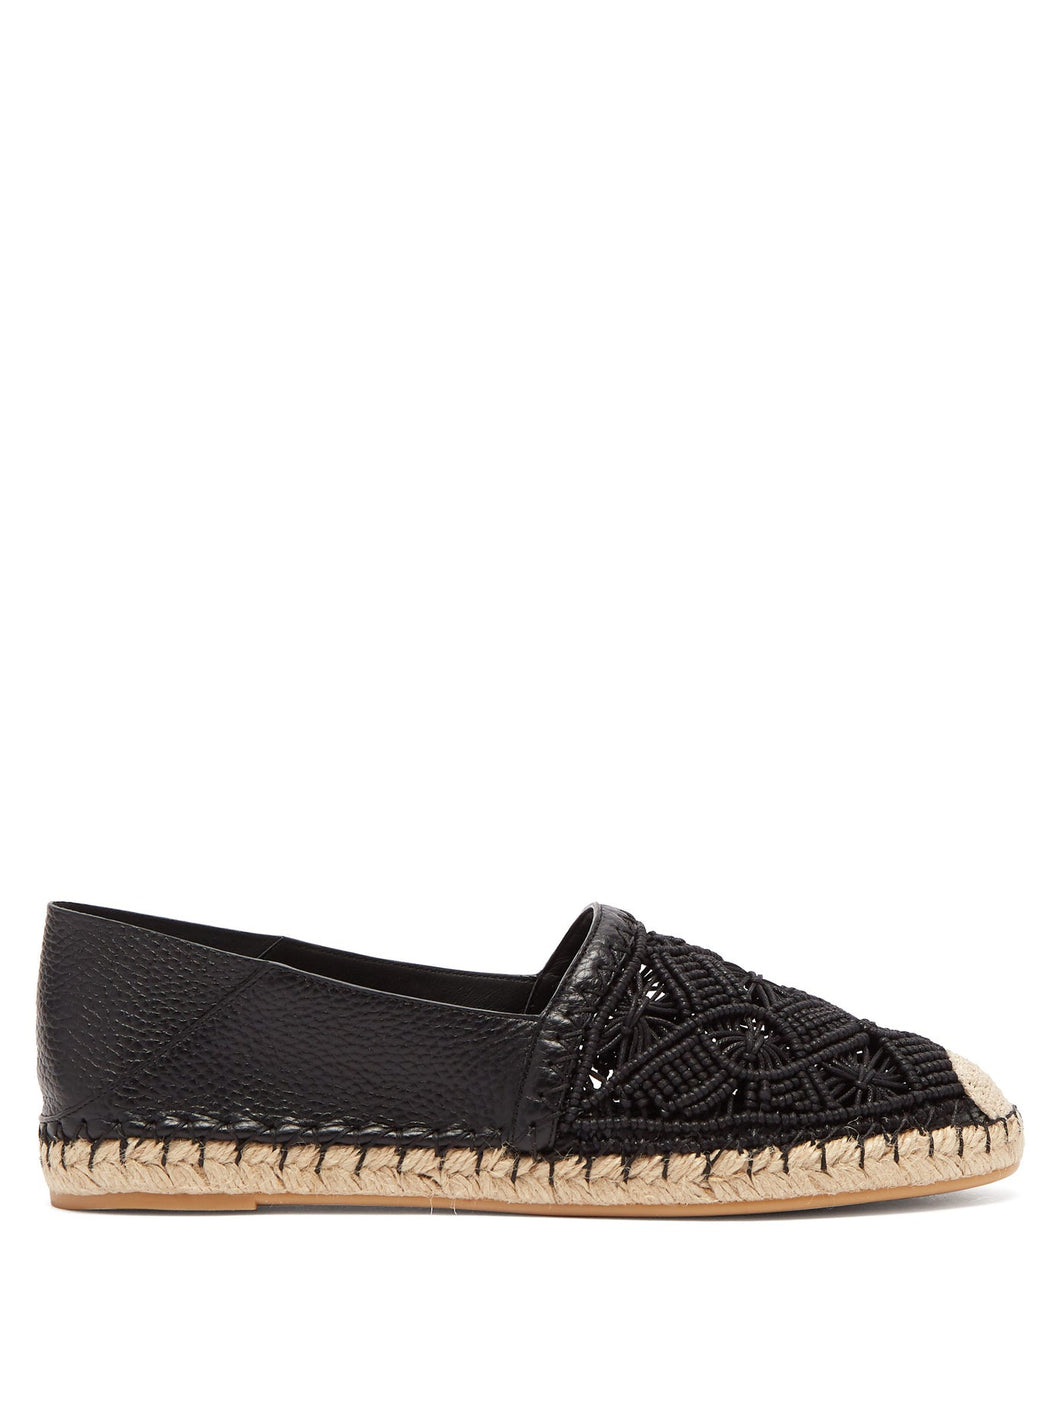 Marrakech macramé and leather espadrilles